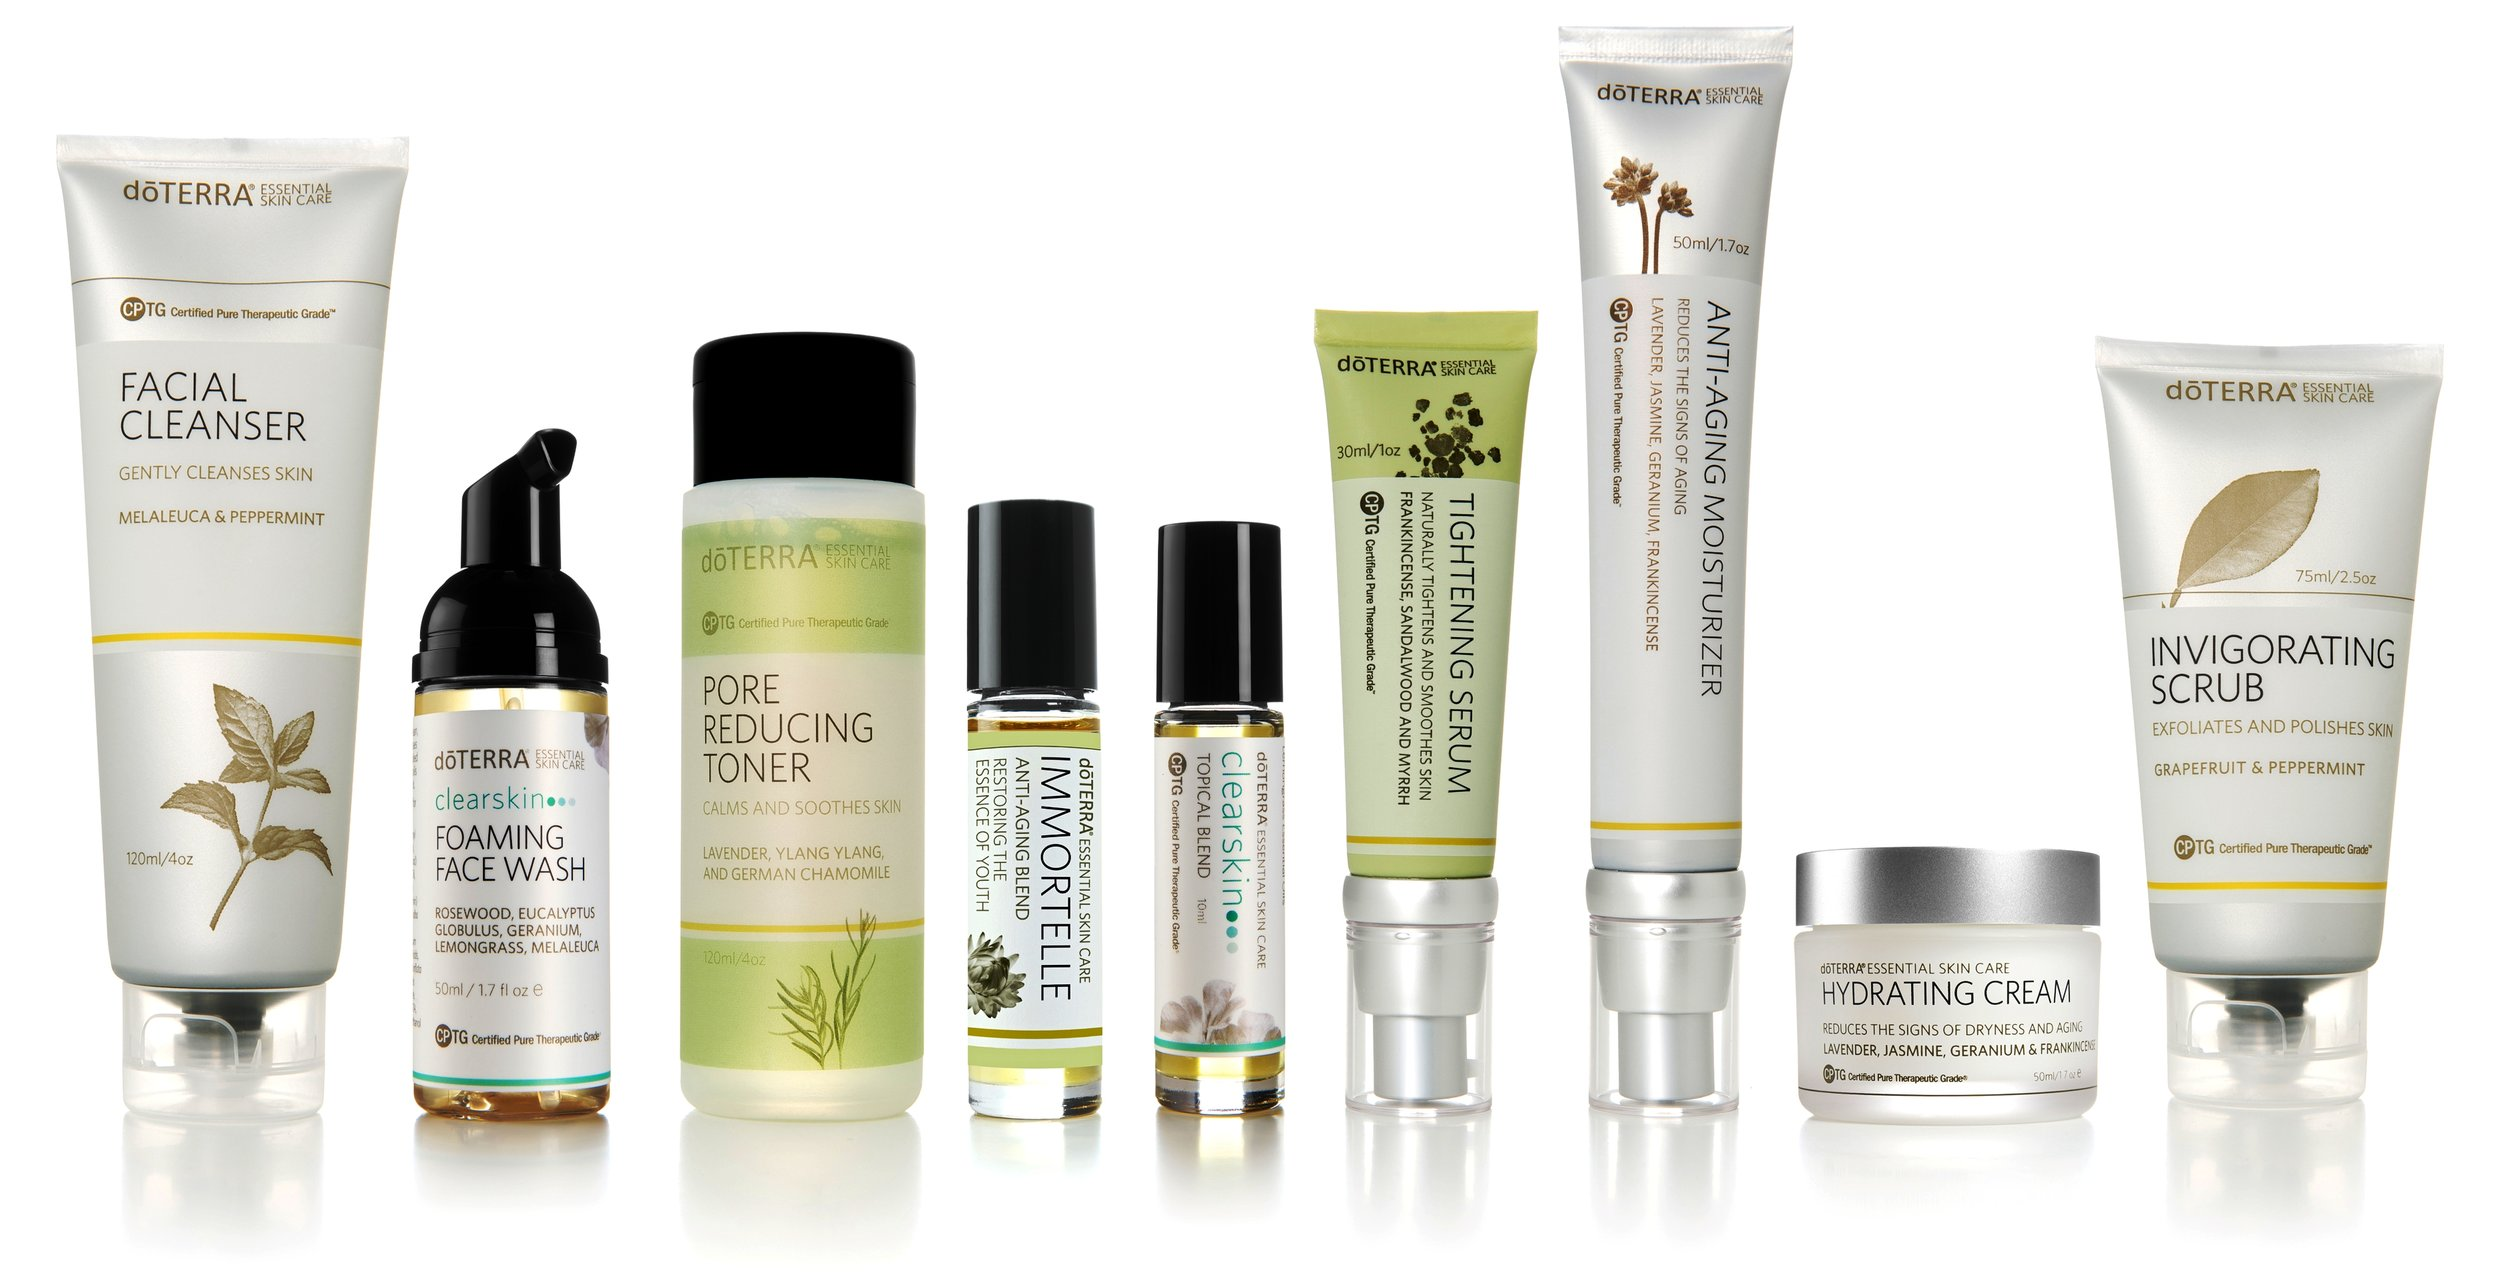 doterra skin products.jpg